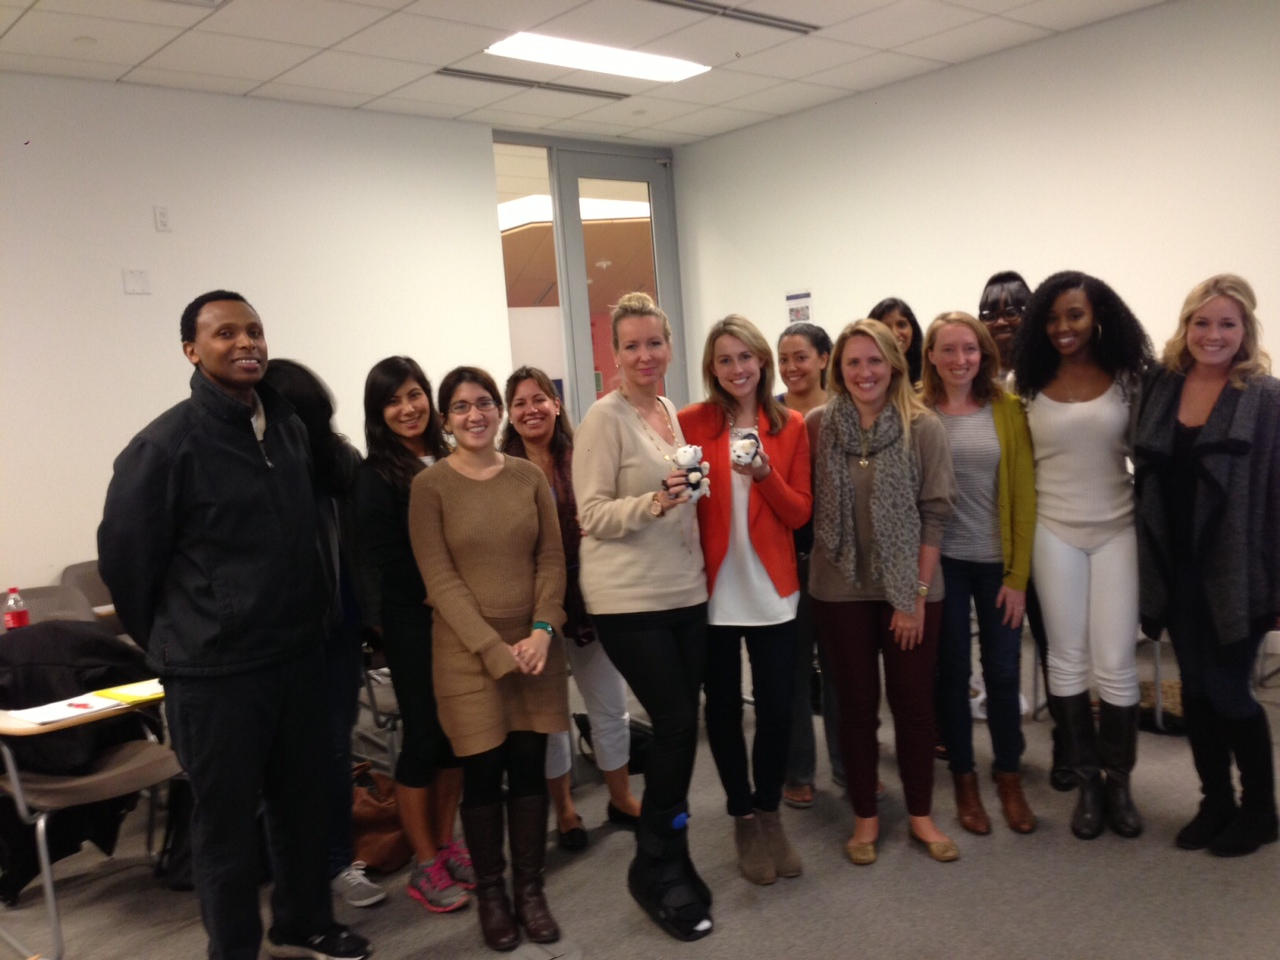 Journalism master's student pose with Katherine Hull Fliflet, RAINN's vice president of communications, and Liz Seccuro, member of RAINN's speakers bureau